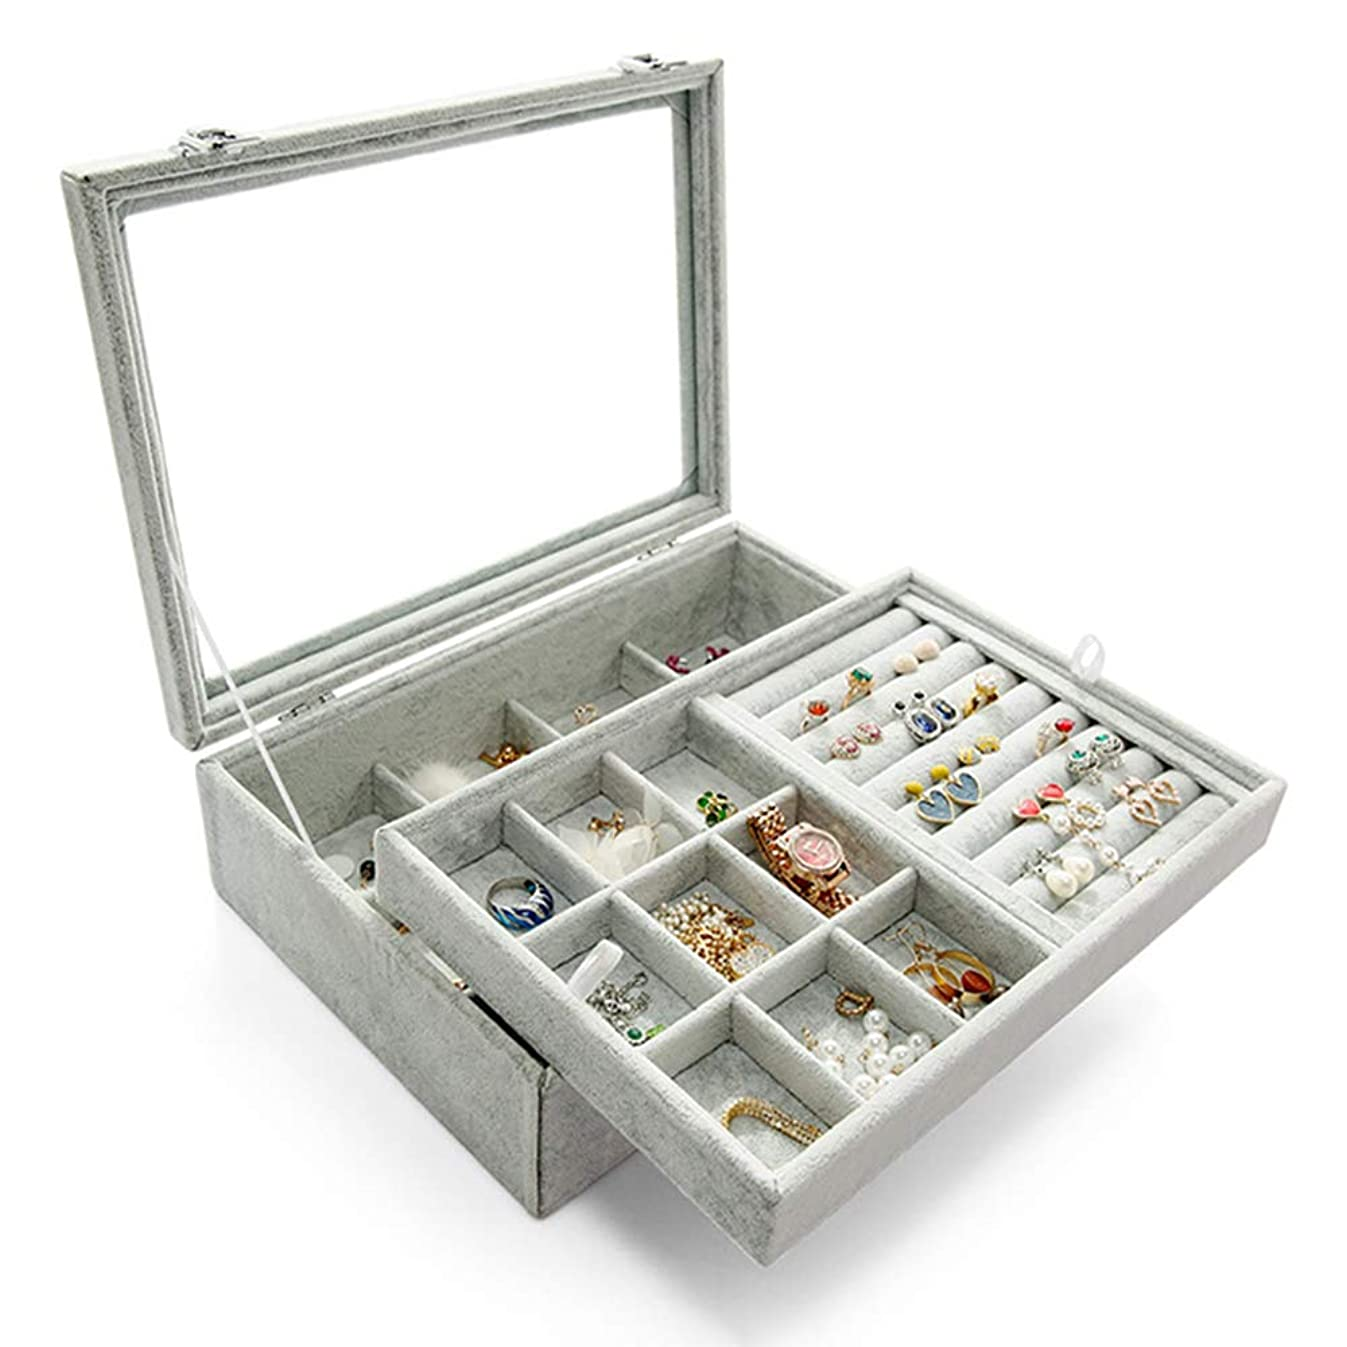 Wuligirl?Clear?Lid?Ring Earrings?Organizer?Holder?2 Layer Ice Velvet 12 Grid Jewelry Tray Box Removable Display Storage Necklace Bracelet(2 Layer?Box)